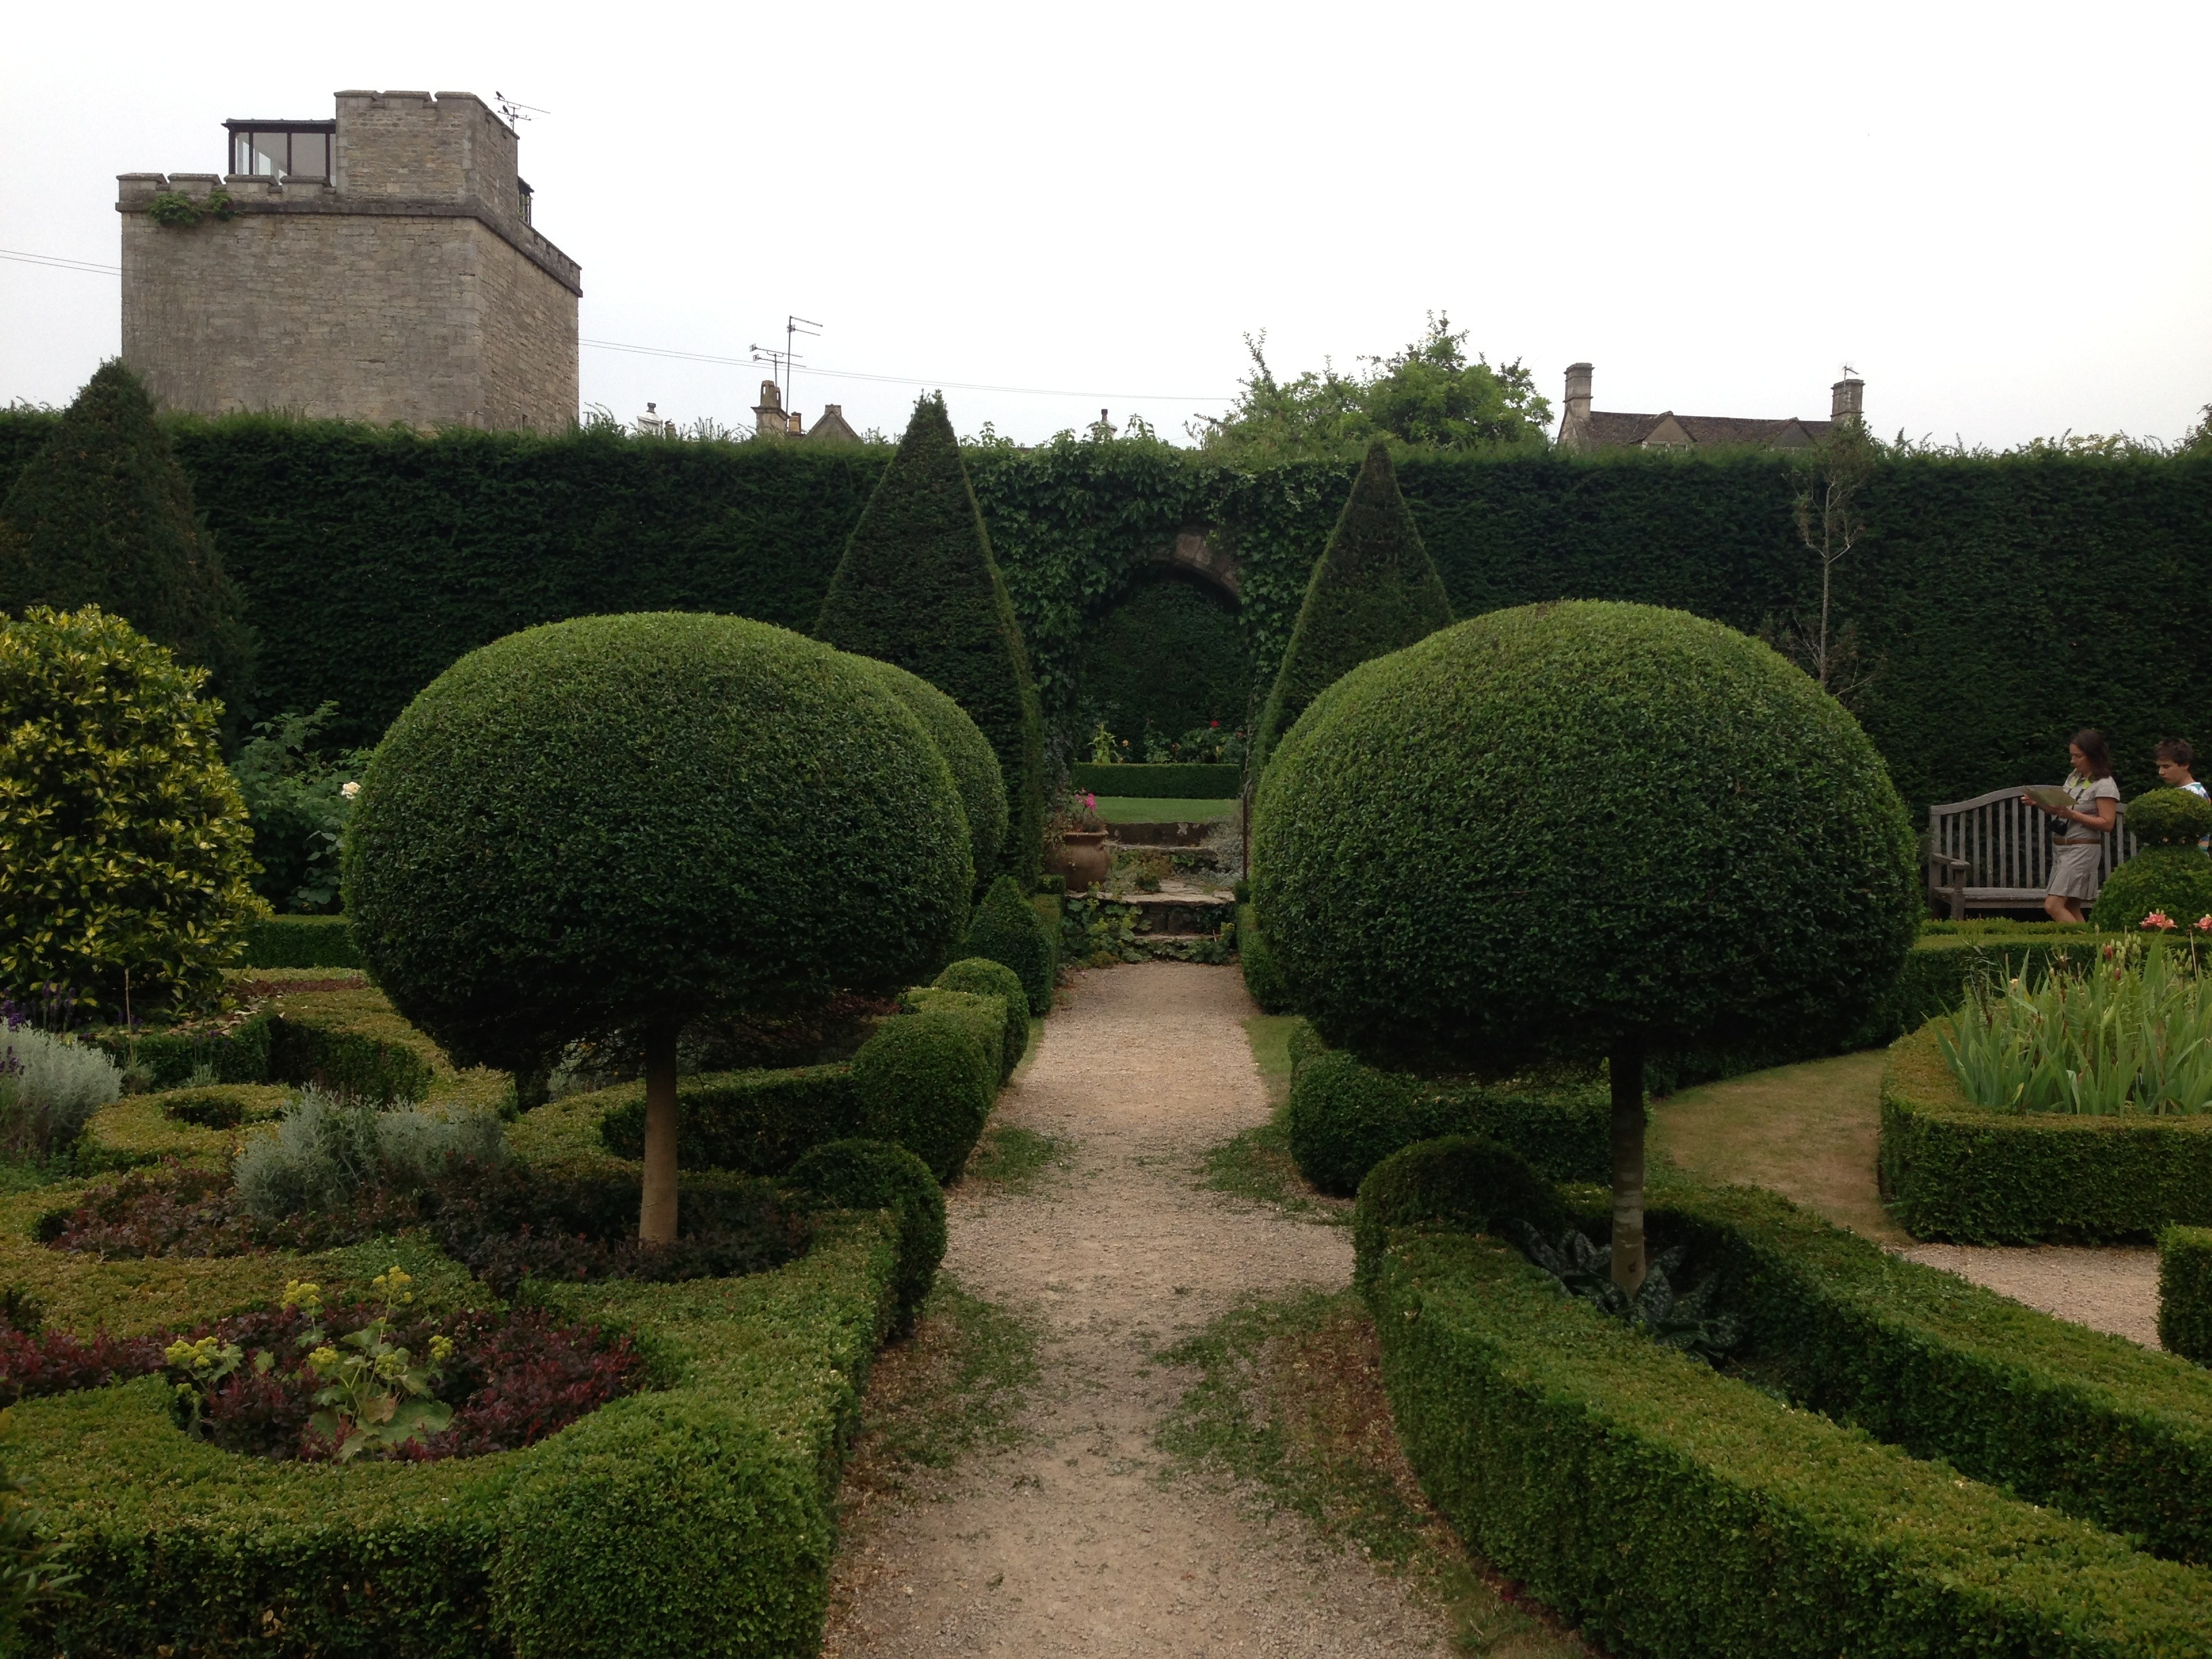 Visit the Grounds and Gardens